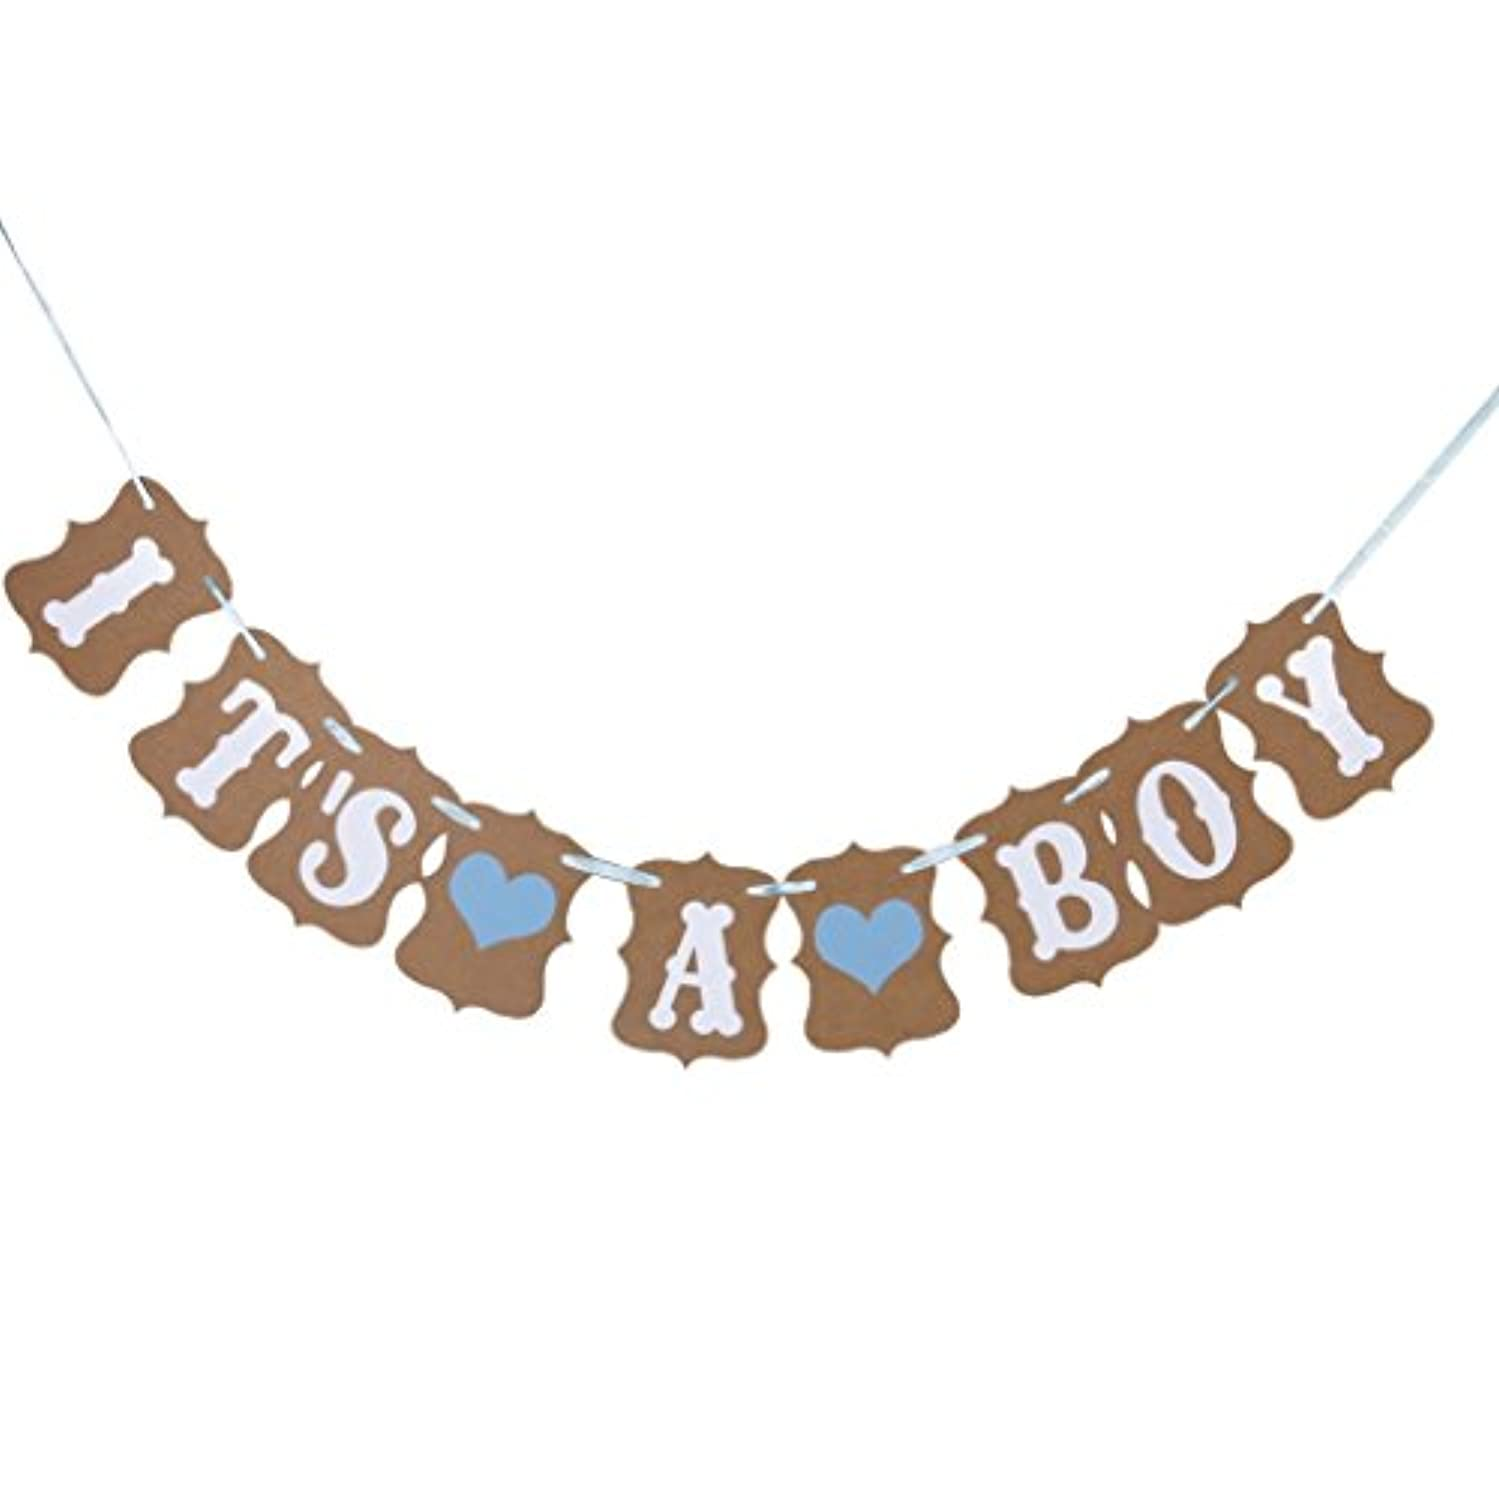 LUTIONS IT IS A BOY Paper Garland Bunting Banner Christening Baby Shower Garland Decoration Birthday Party Favors Photo Prop